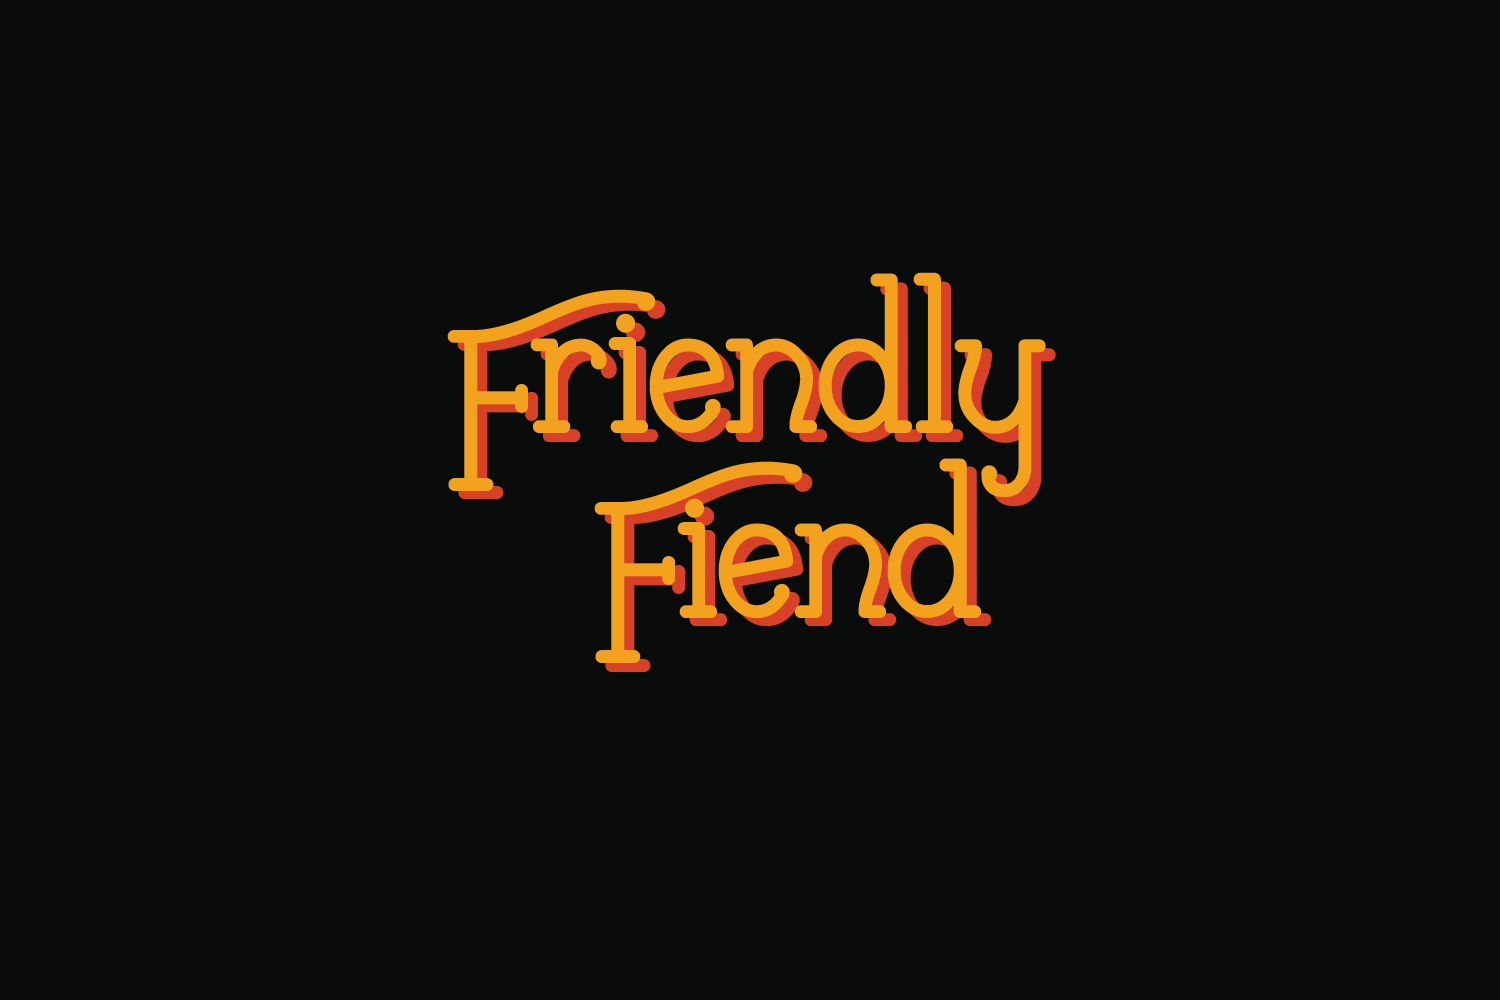 friendly fiend2